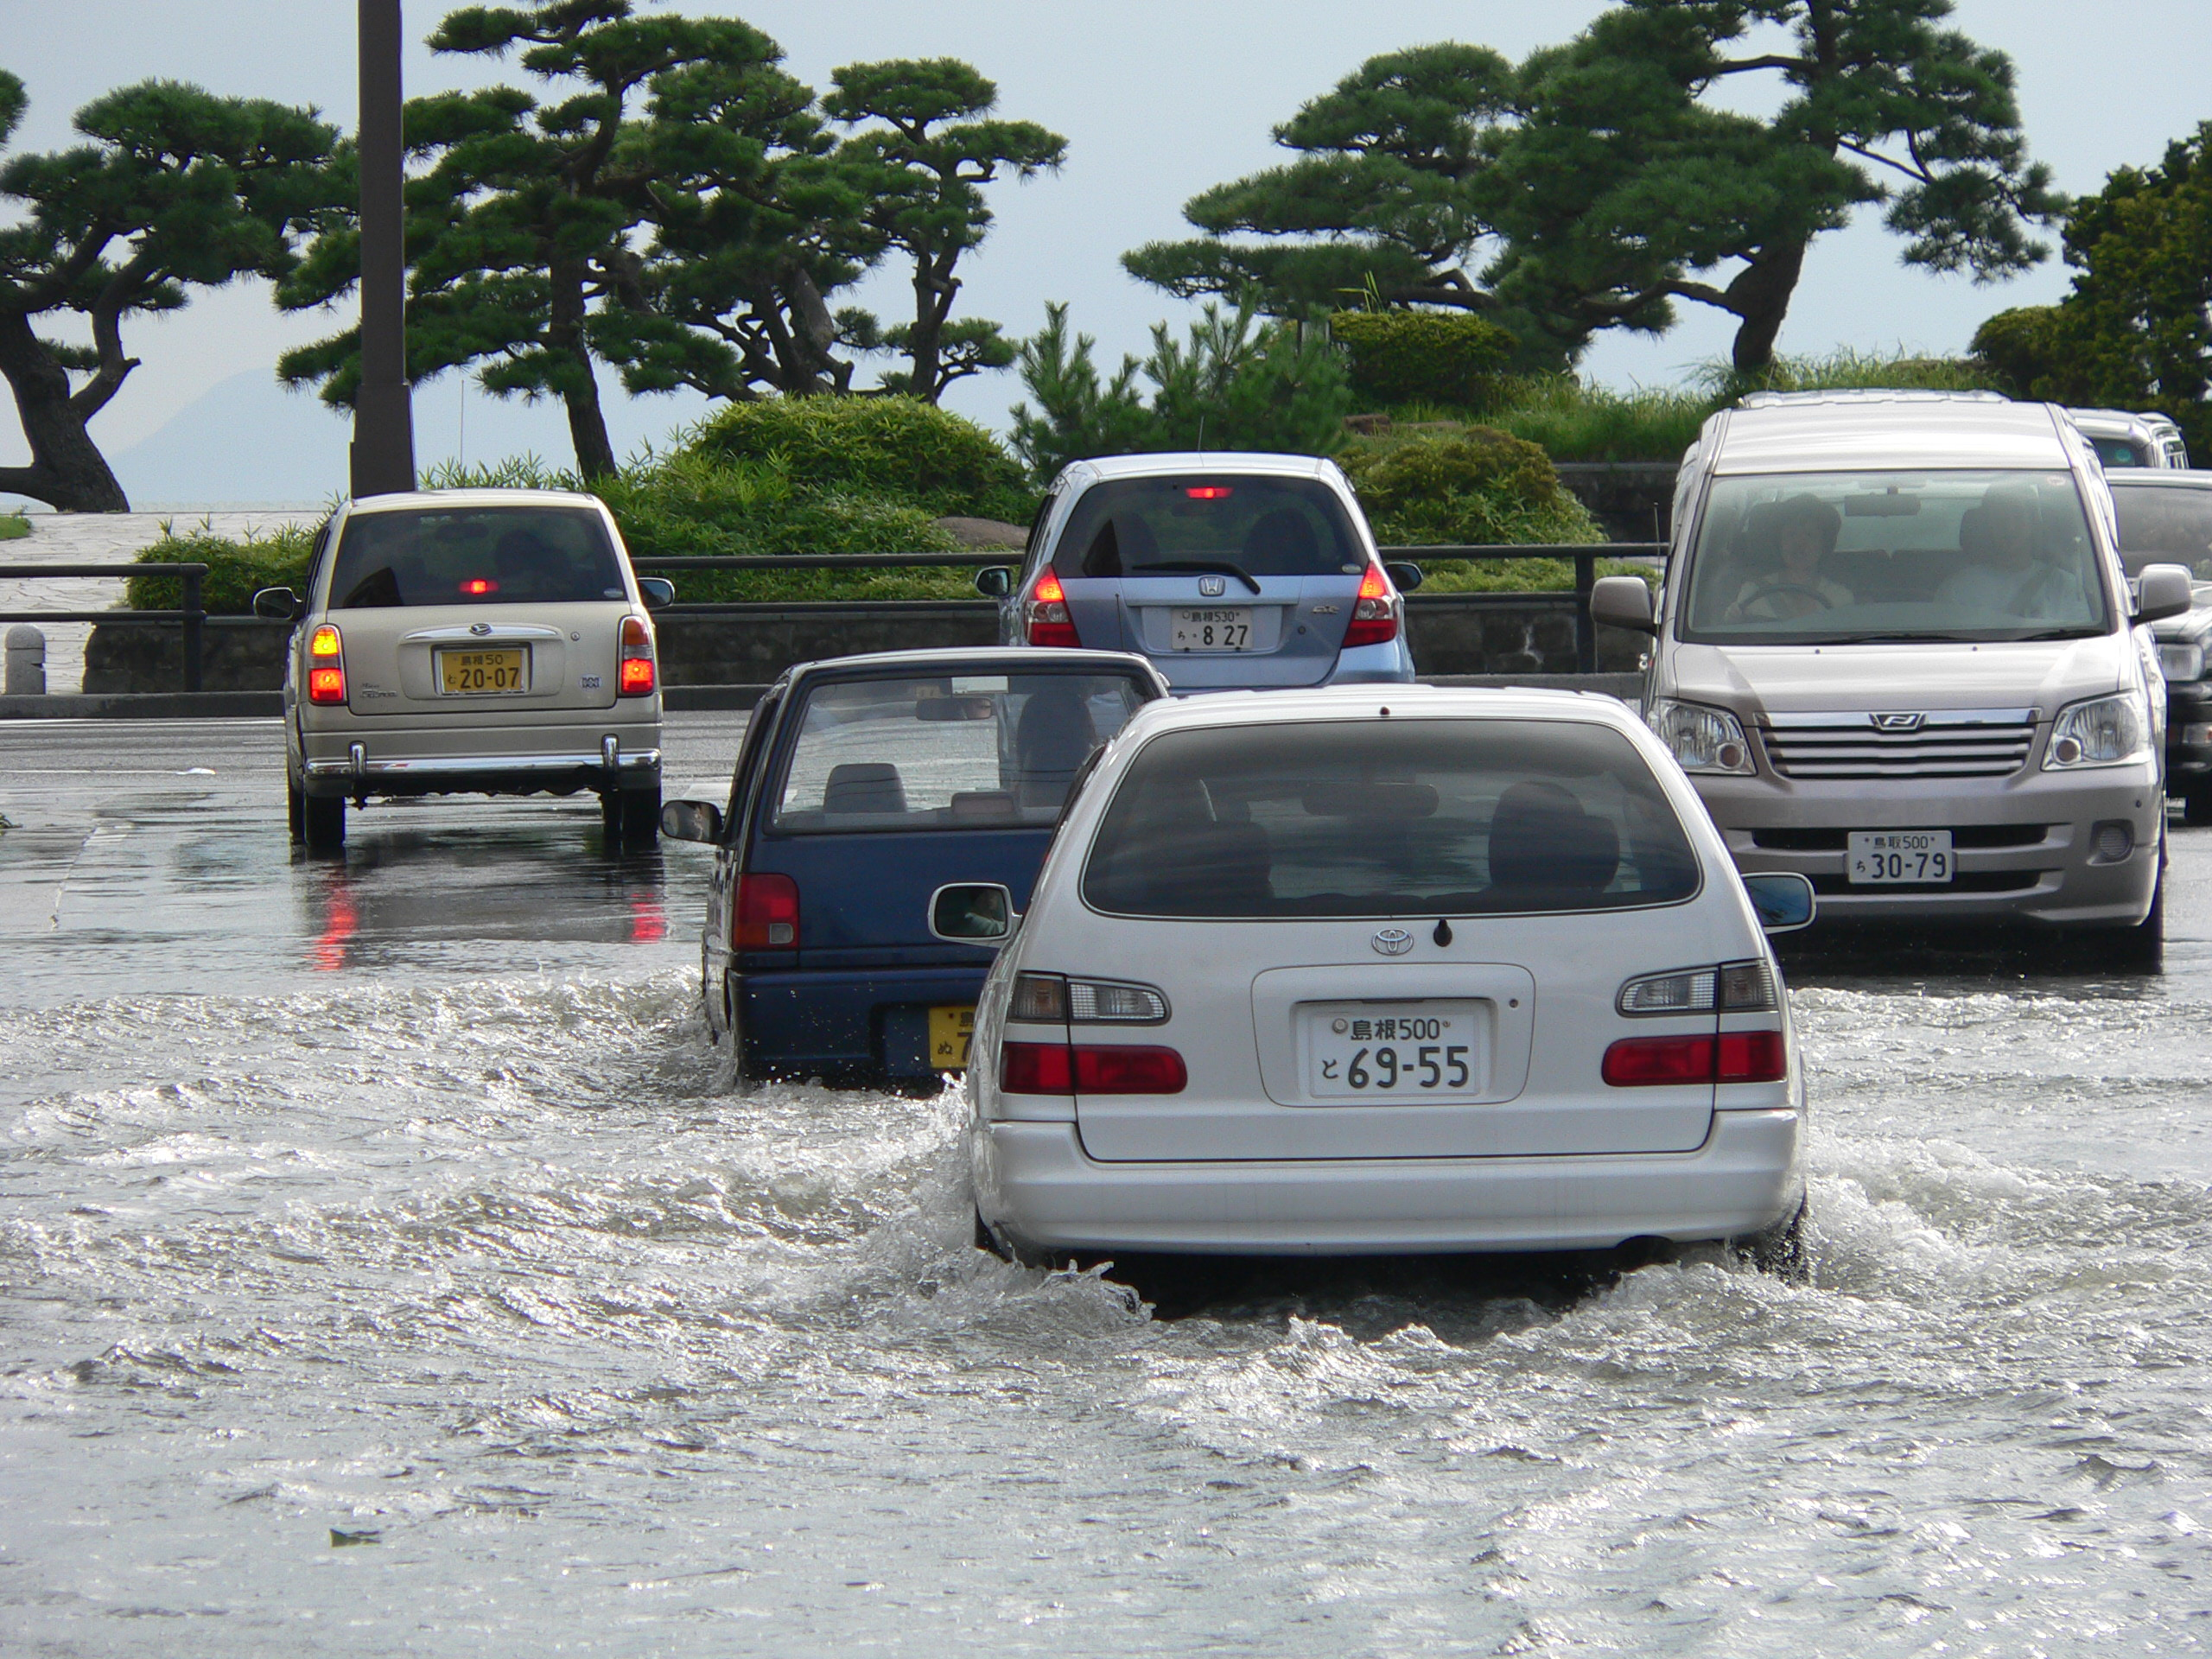 Cars driving on a flooded street in Matsue, Japan, Car, Cars, Escape, Flood, HQ Photo